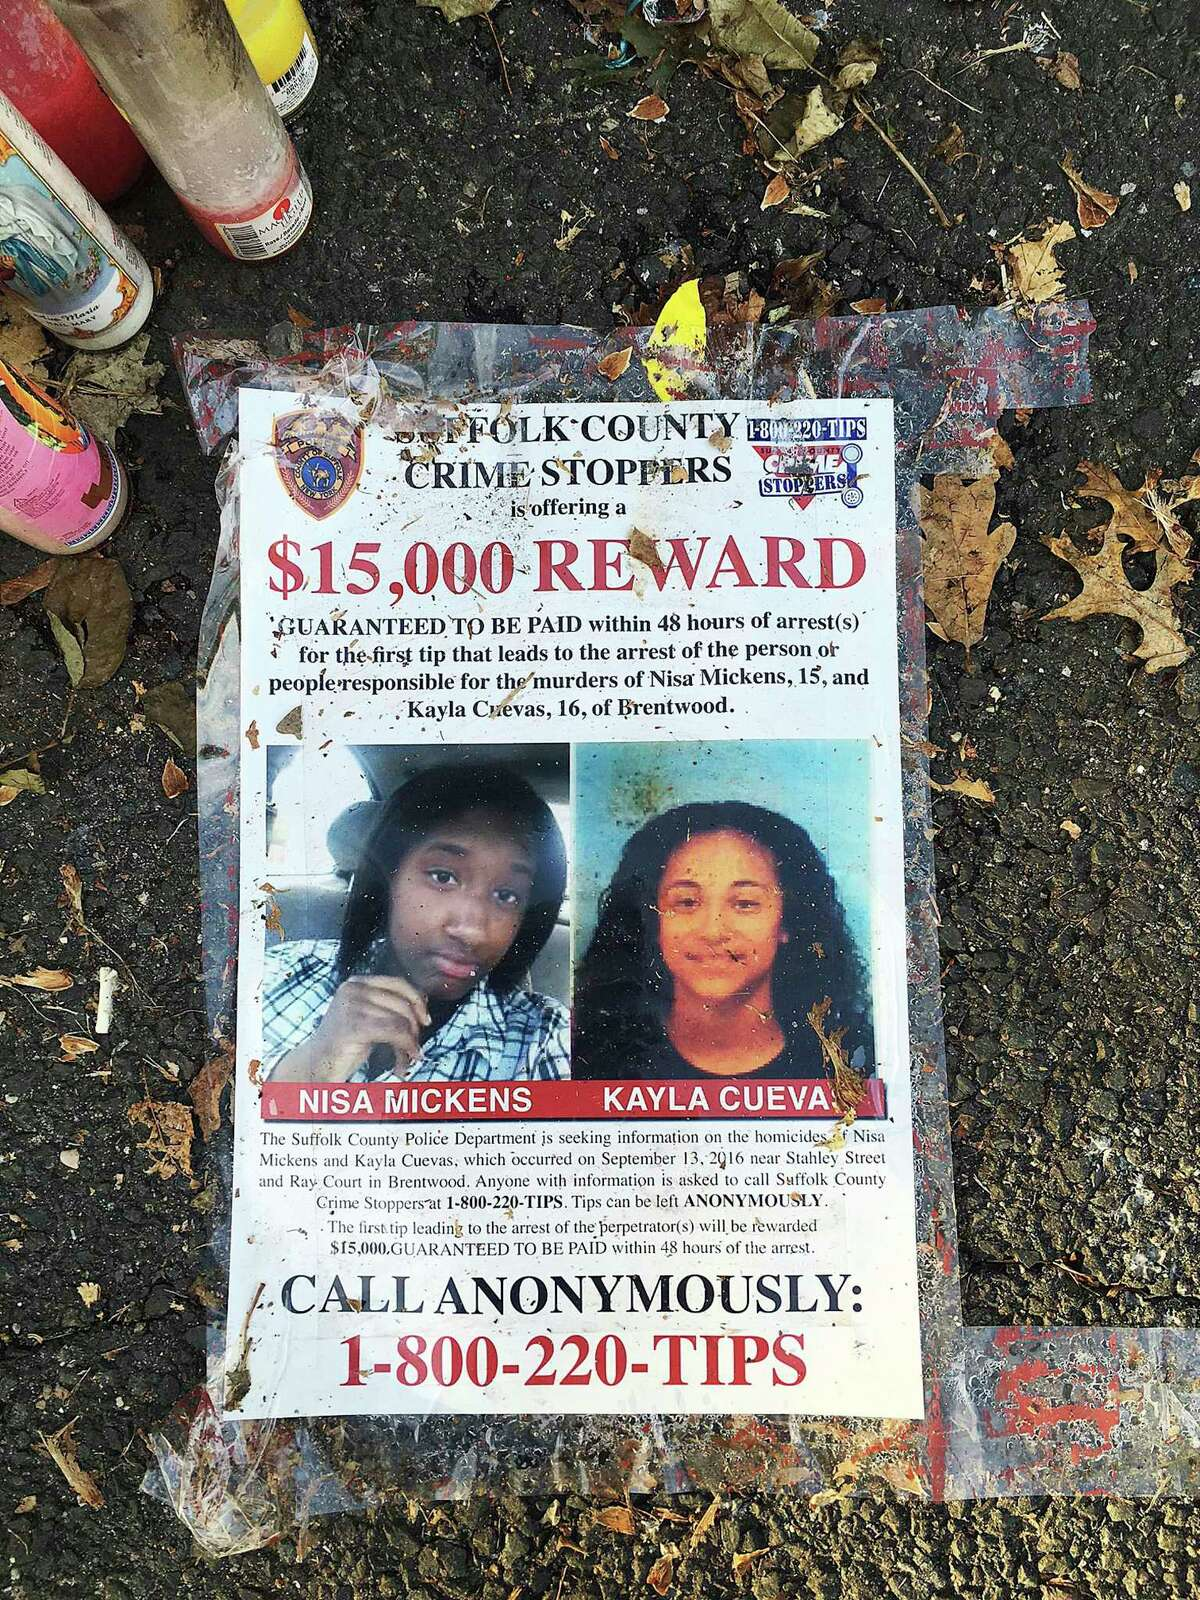 FILE - In this Sept. 27, 2016 file photo, a poster featuring photos of Nisa Mickens and Kayla Cuevas is part of a memorial near the spot where their bodies were found in Brentwood, N.Y. The girls, who were best friends, were found murdered. In the months leading up to her death, Kayla was involved in a series of disputes with members and associates of the MS-13, prosecutors said. (AP Photo/Claudia Torrens, File) ORG XMIT: NYR202